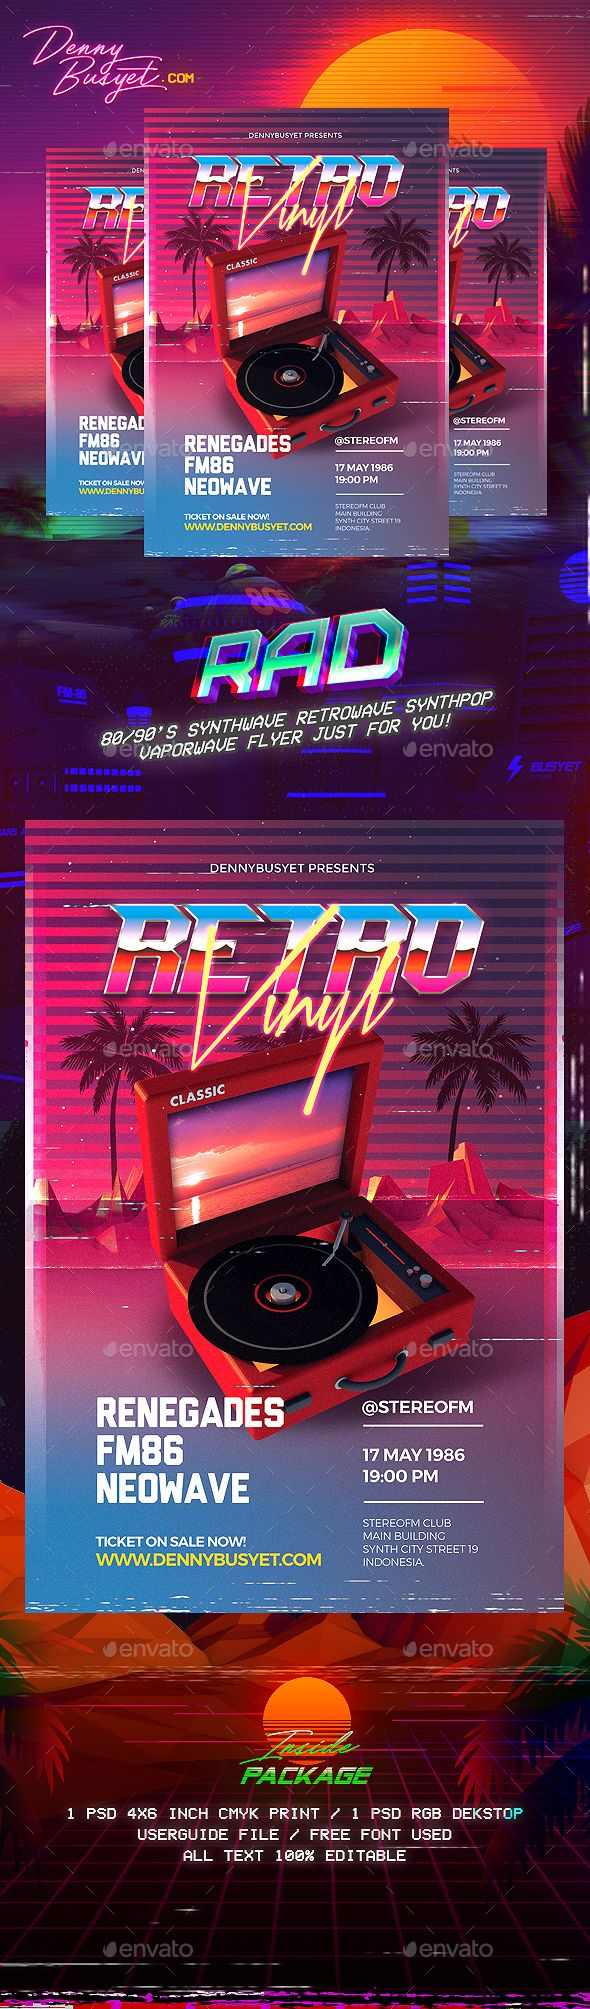 retro vinyl 80 s synthwave flyer template psd flyer templates in